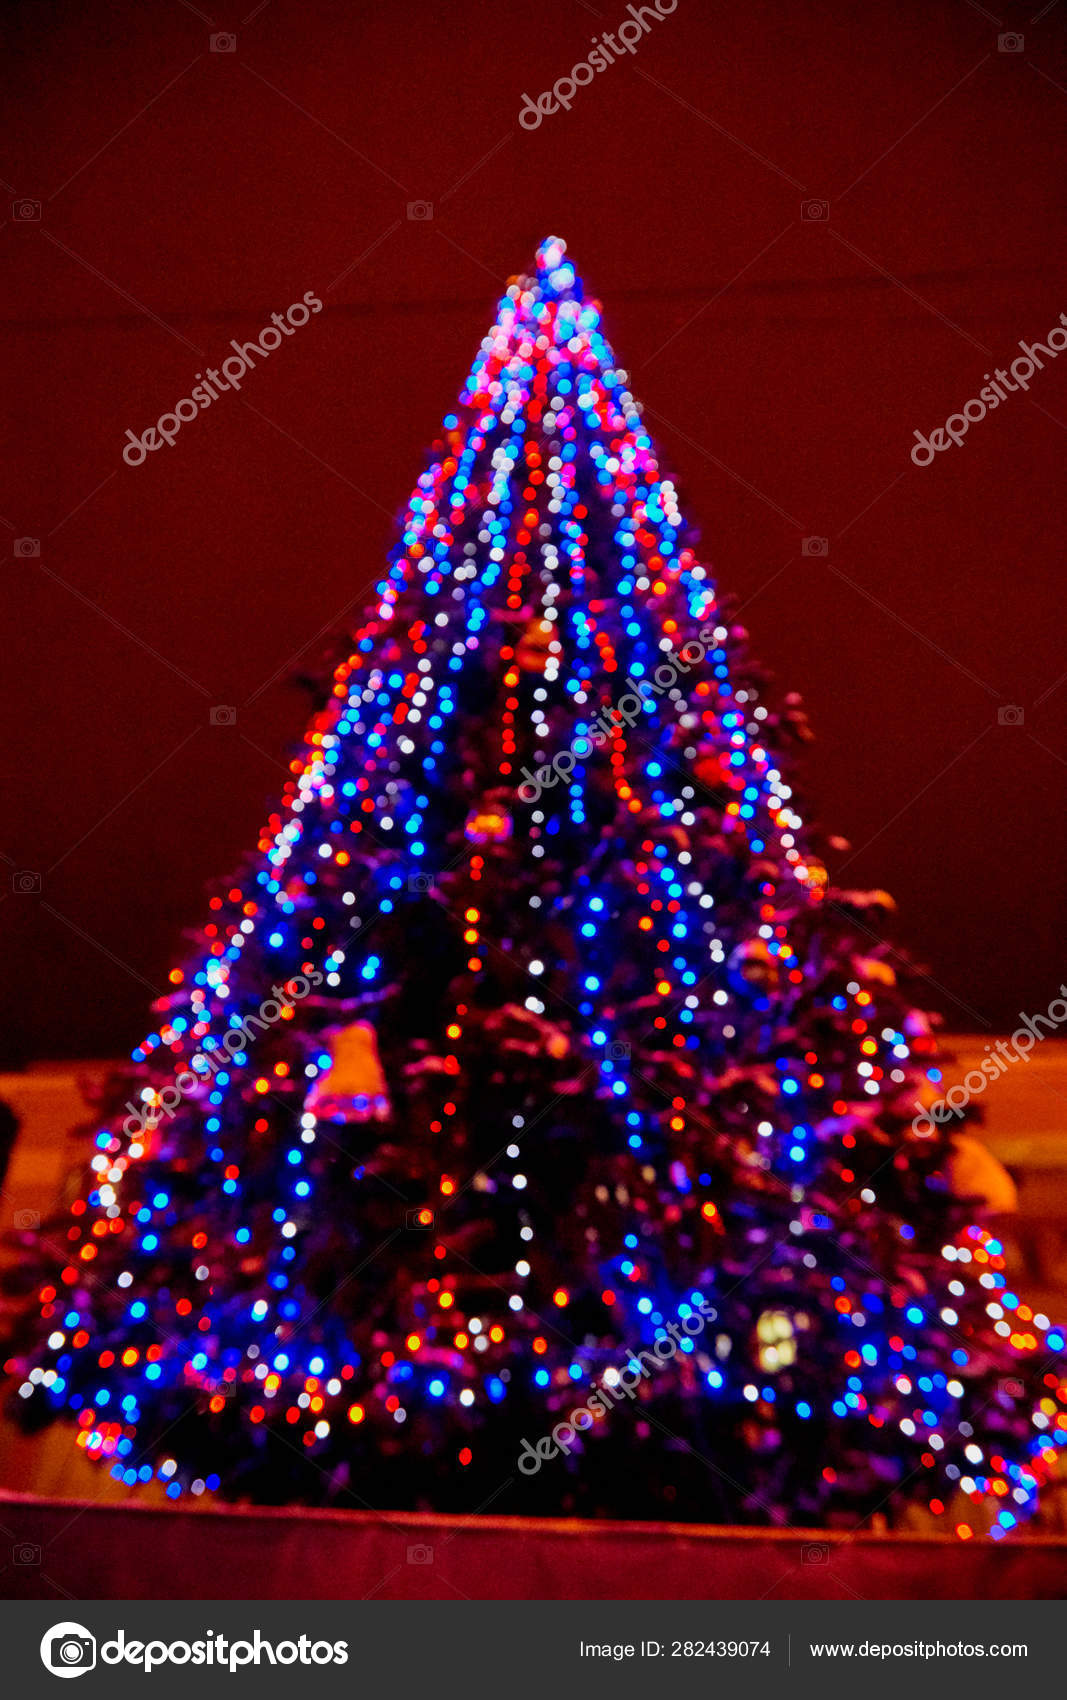 Abstract Texture With Light Blue And Red Bokeh And Black Background Christmas Tree In Blur Stock Photo Image By C Keleny 282439074